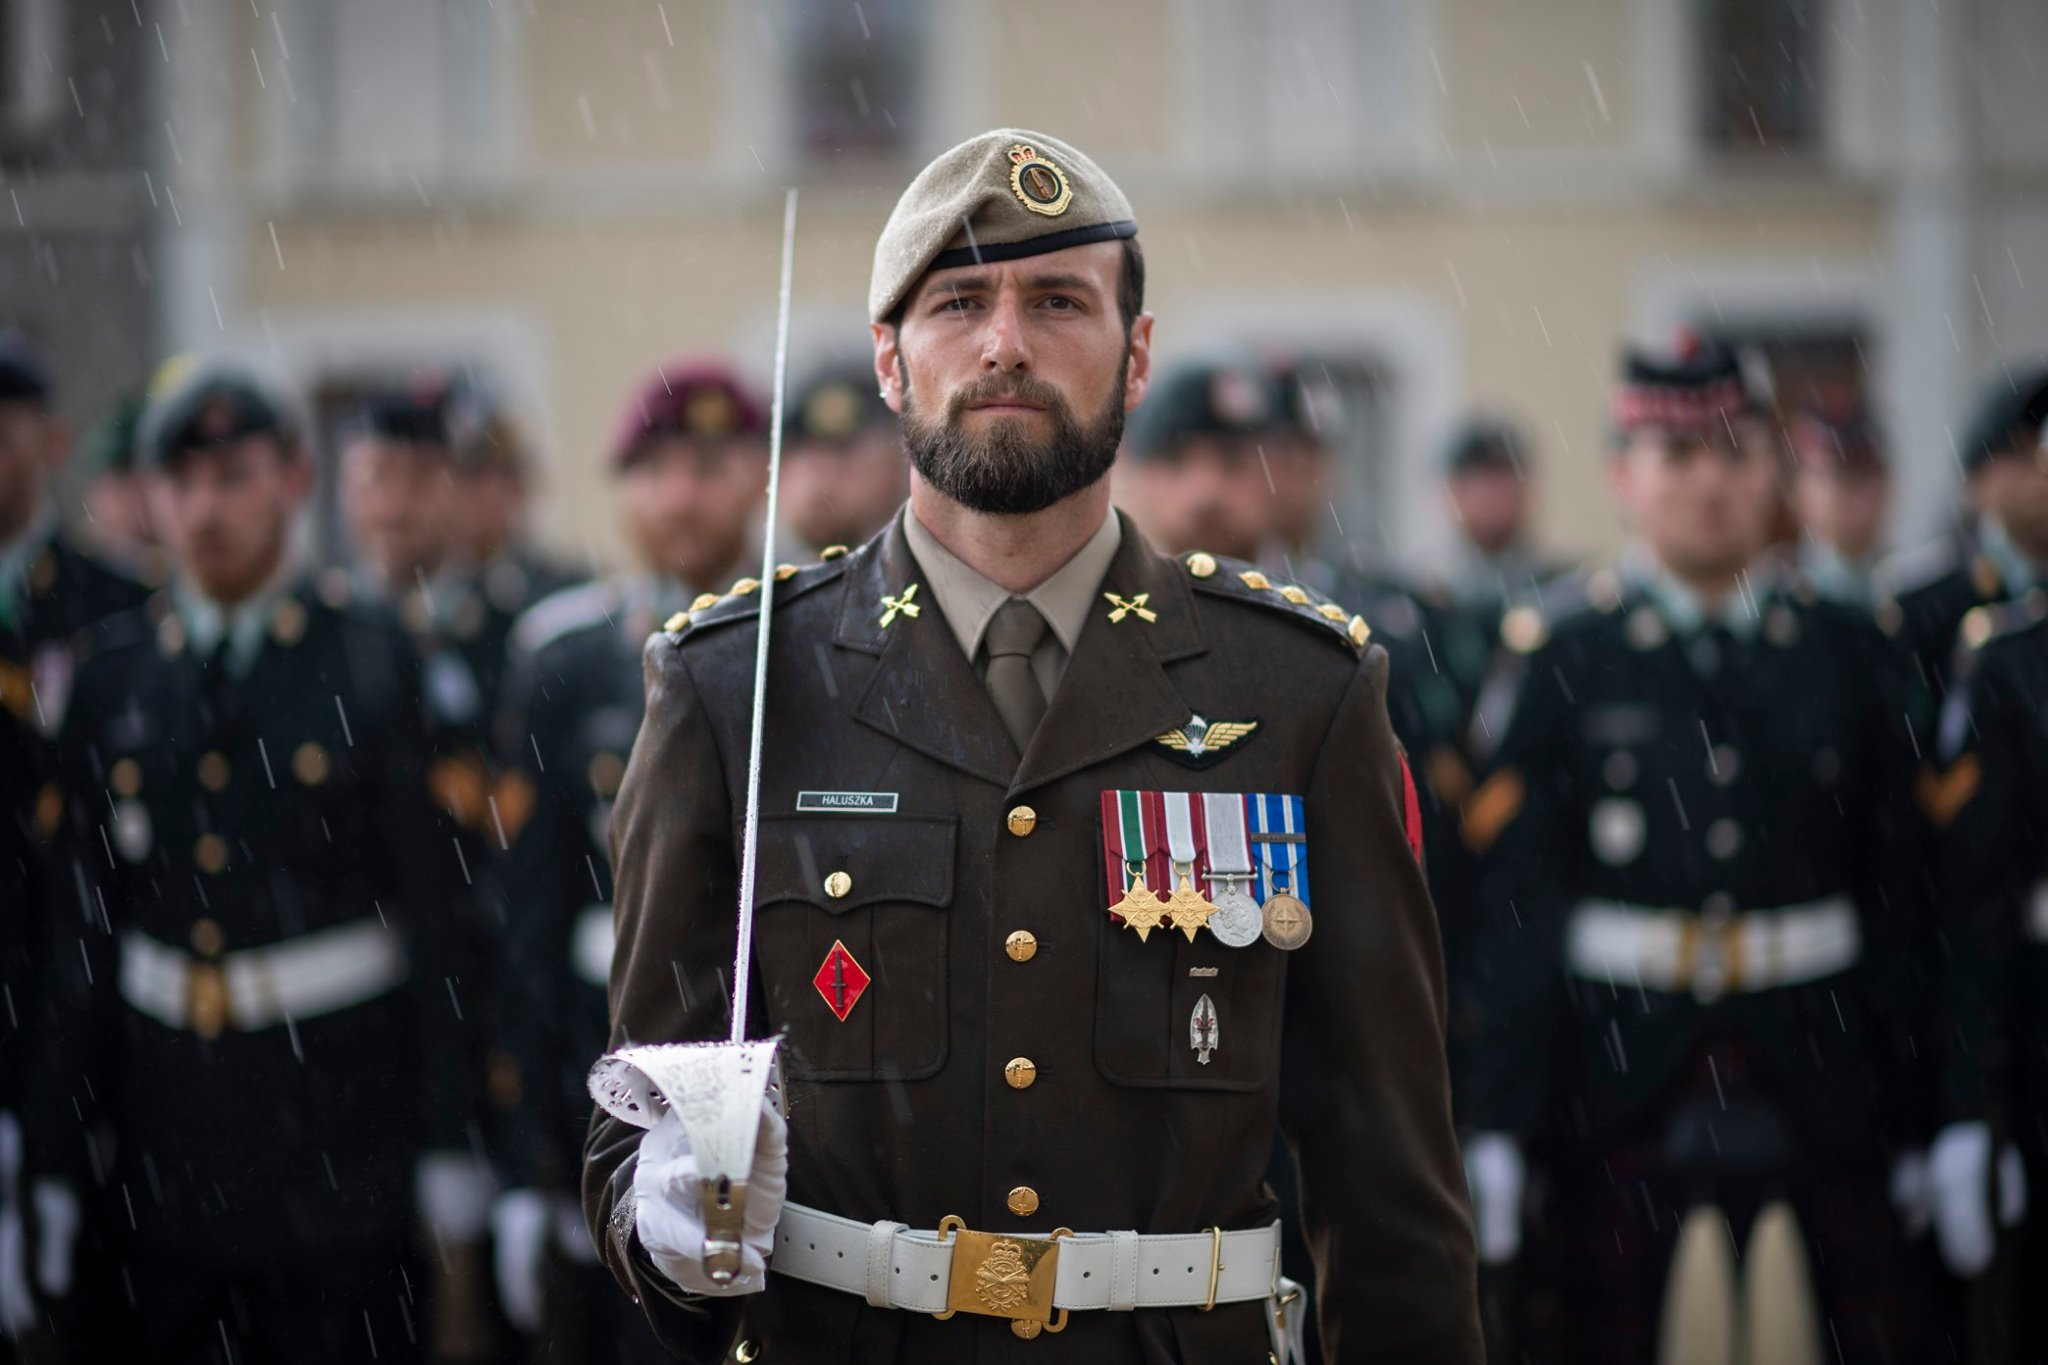 New CANSOFCOM Dress Uniform Seen During D-Day Commemorations – D-Day